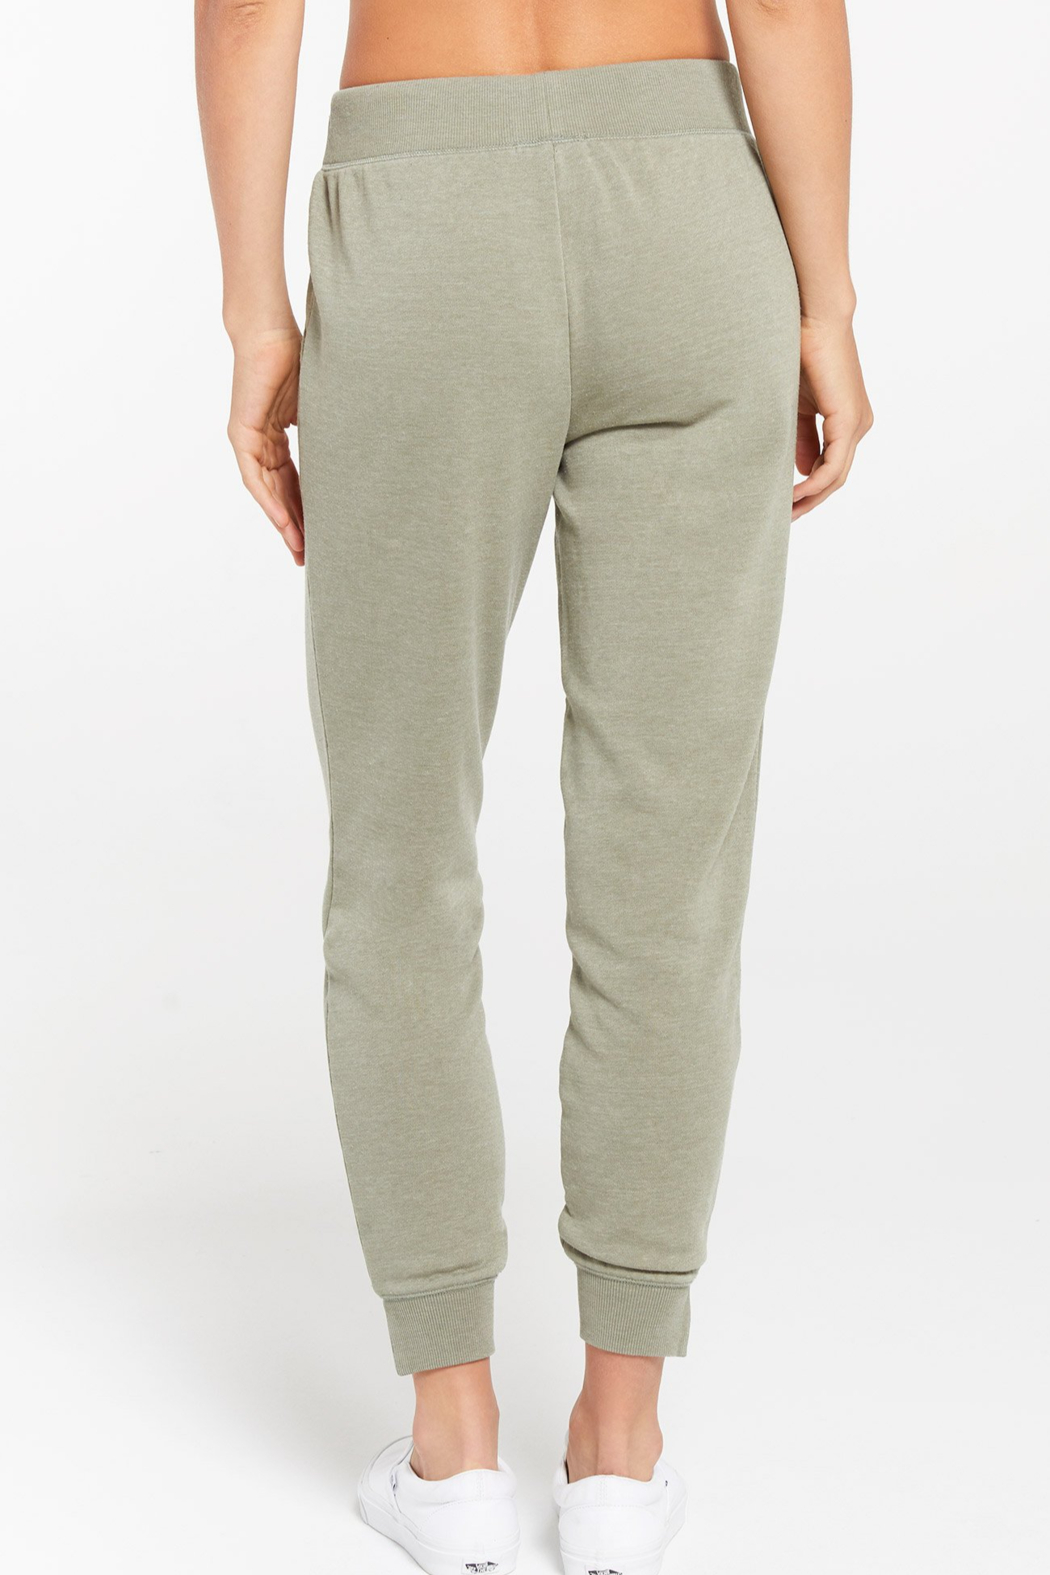 z supply Cypress Terry Jogger - Side Cropped Image